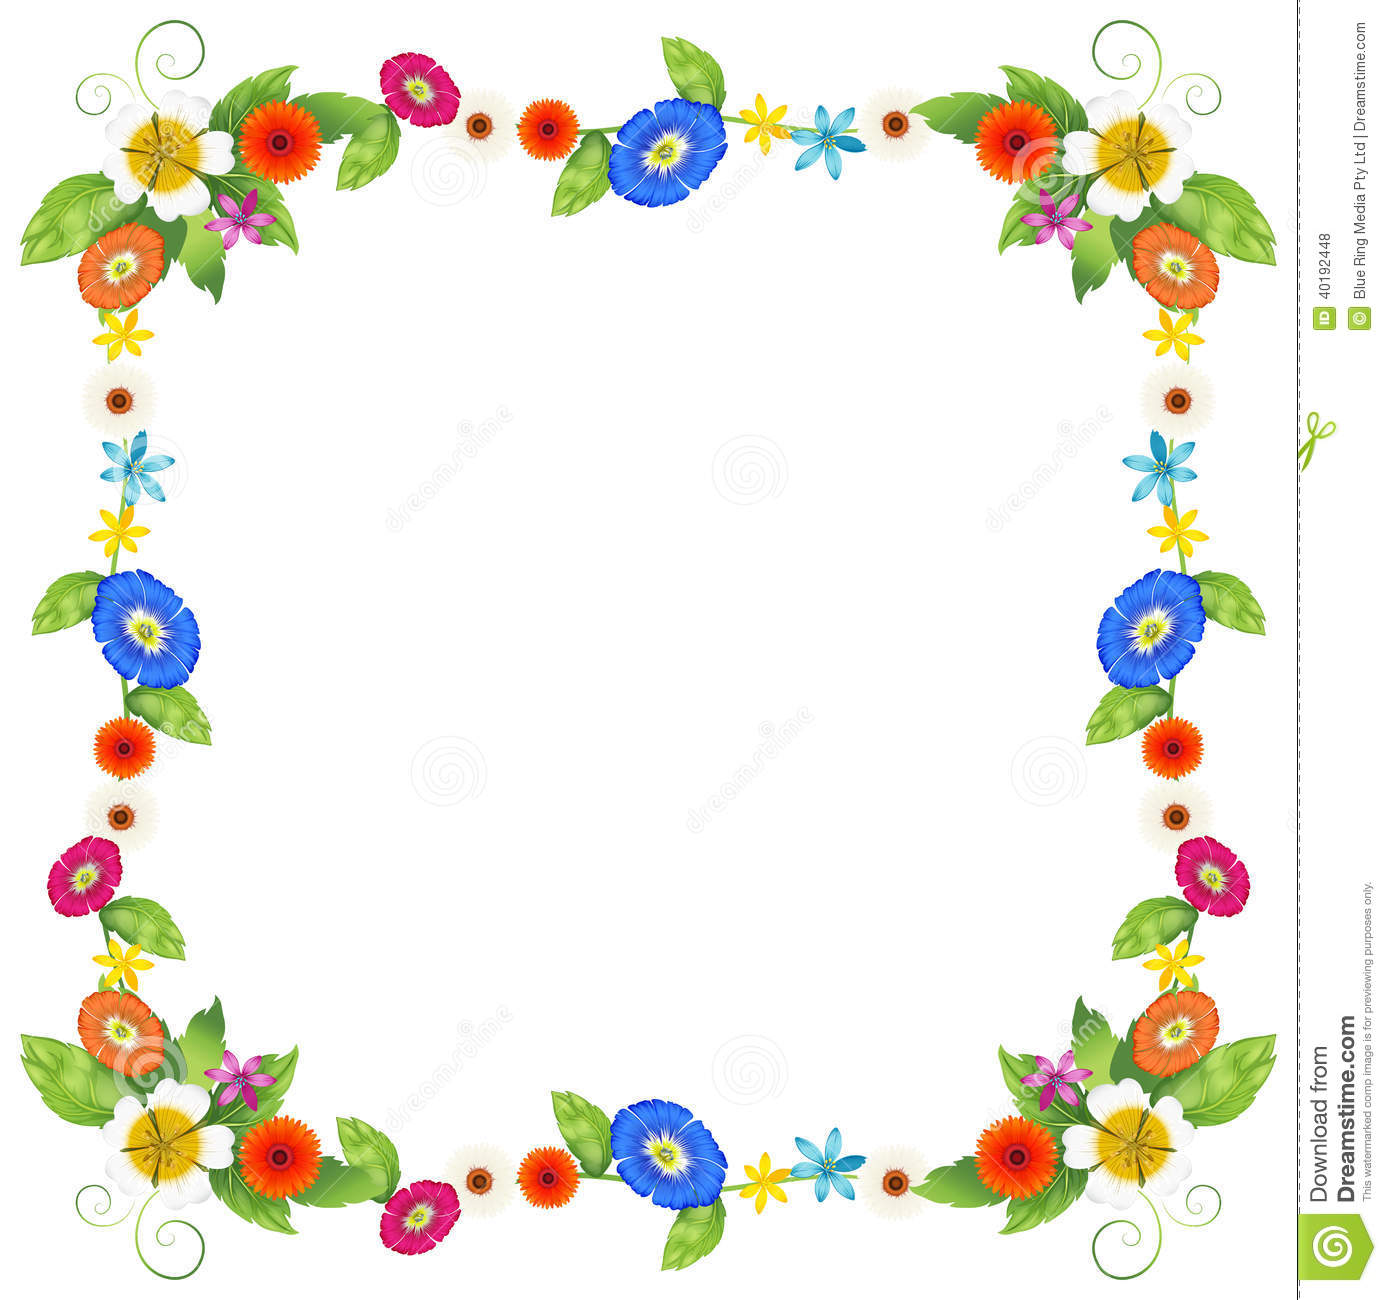 Illustration of a colourful border design on a white background.